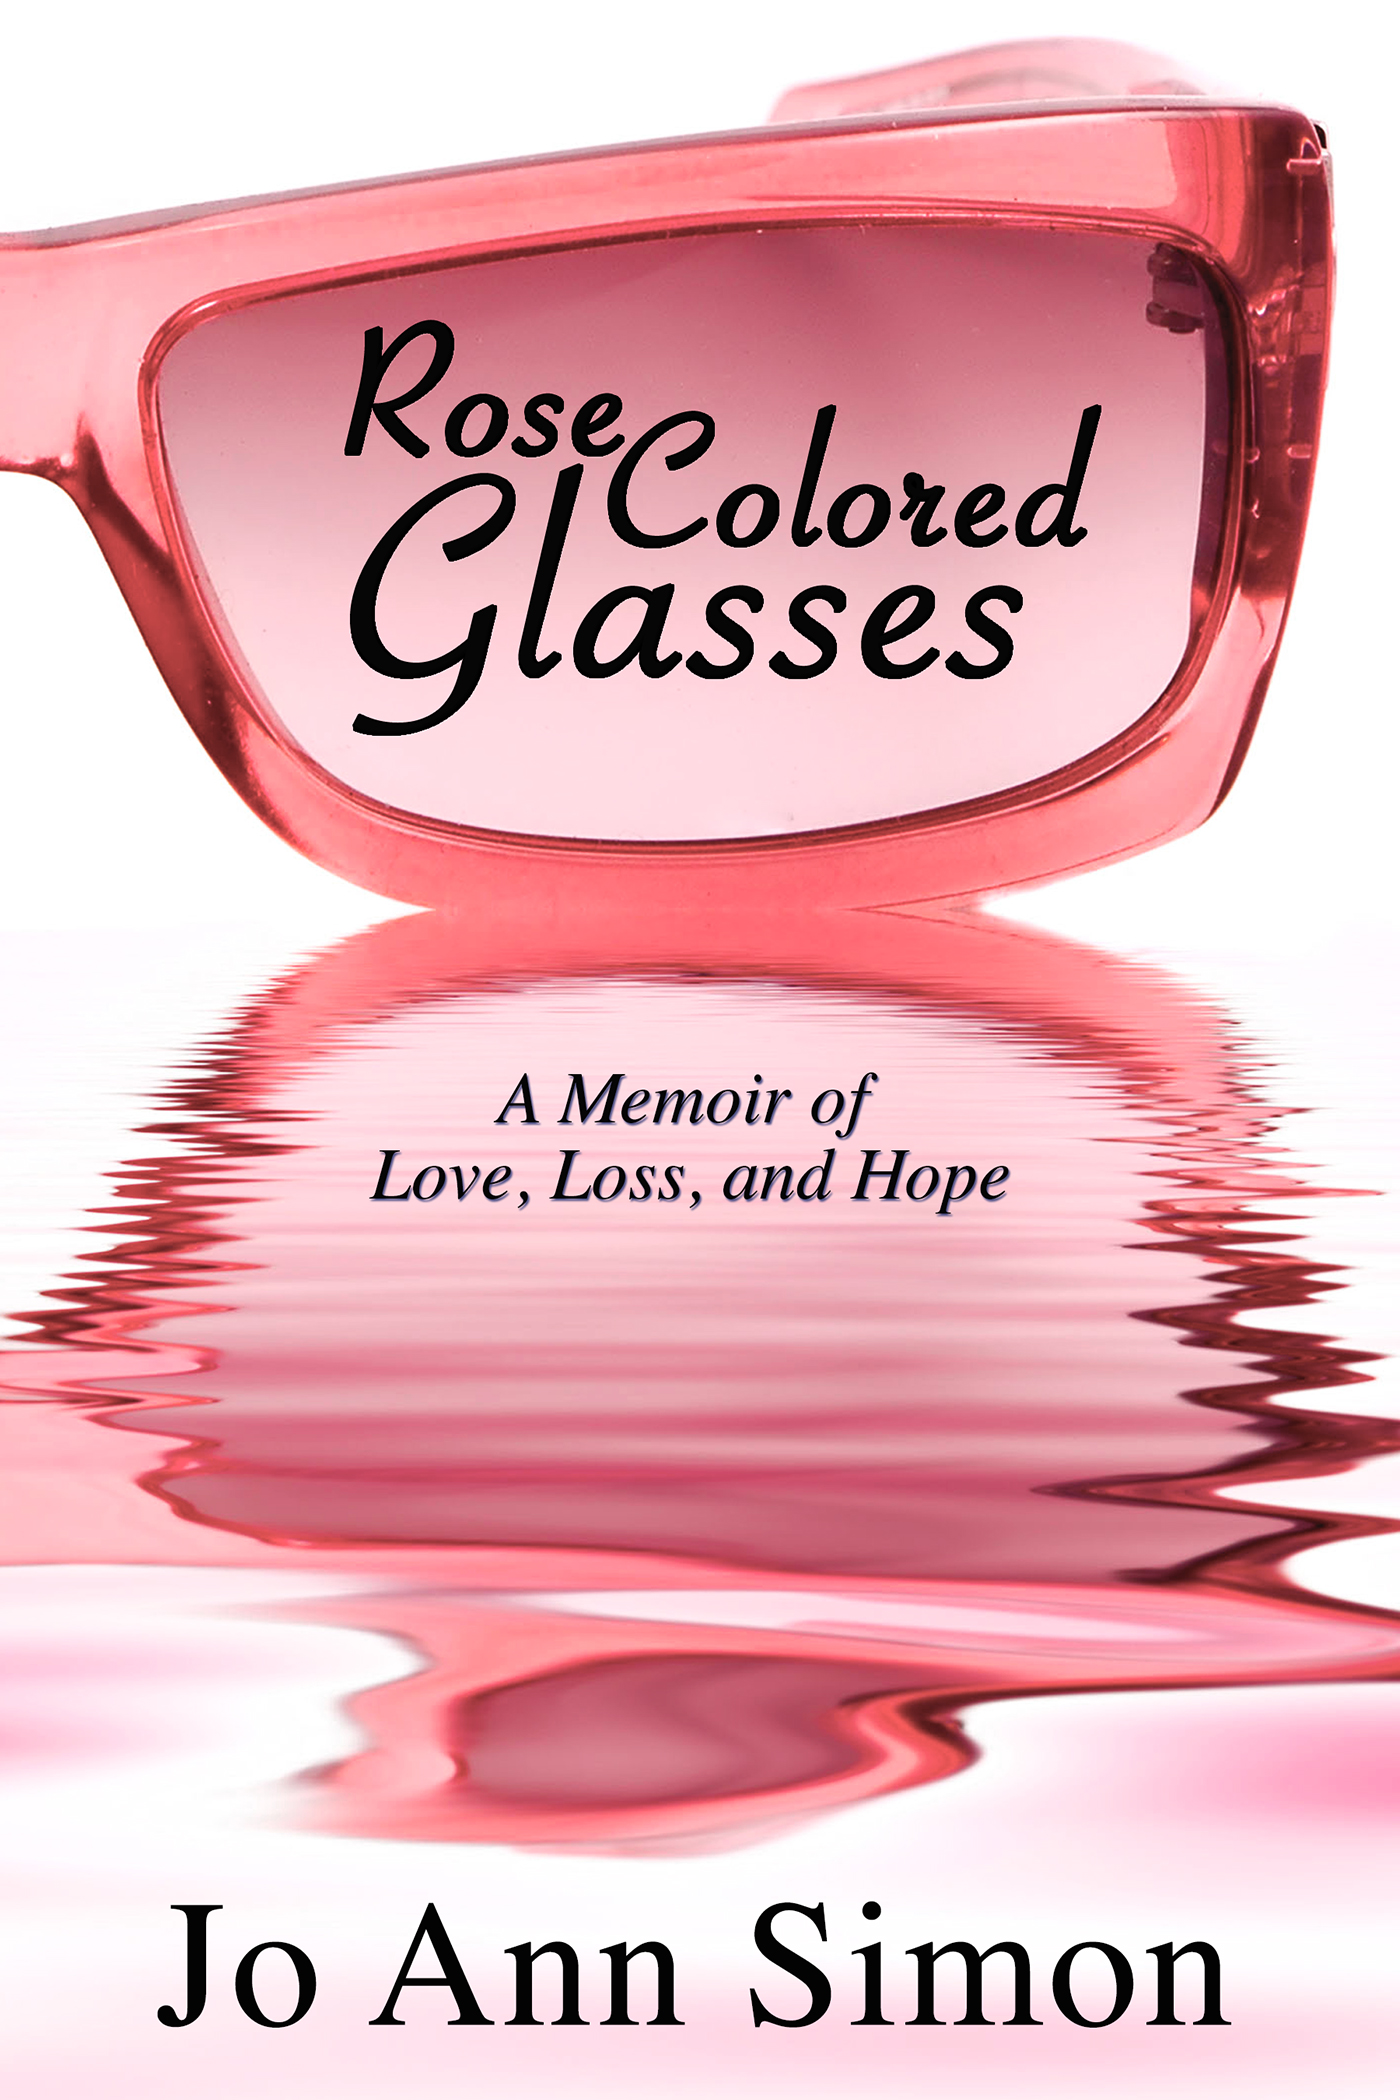 Please welcome JoAnn Simon, author of Rose Colored Glasses | Choices